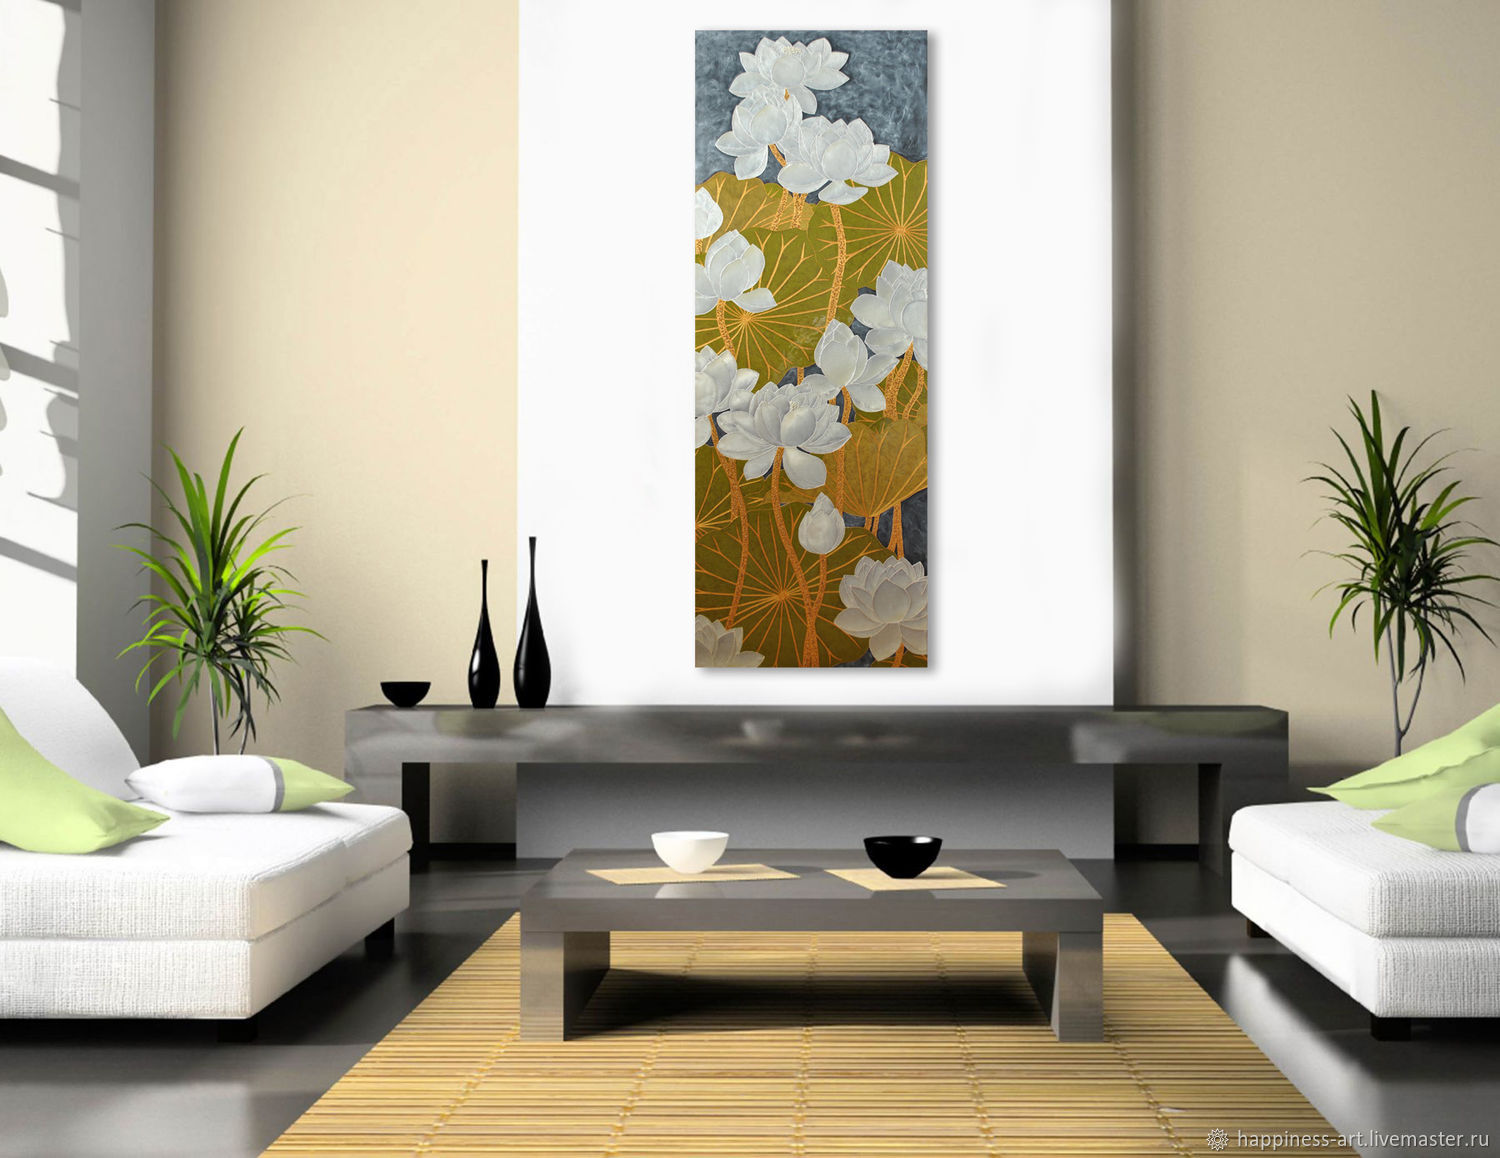 Narrow vertical picture for the interior with white Lotus flowers, Pictures, Moscow,  Фото №1